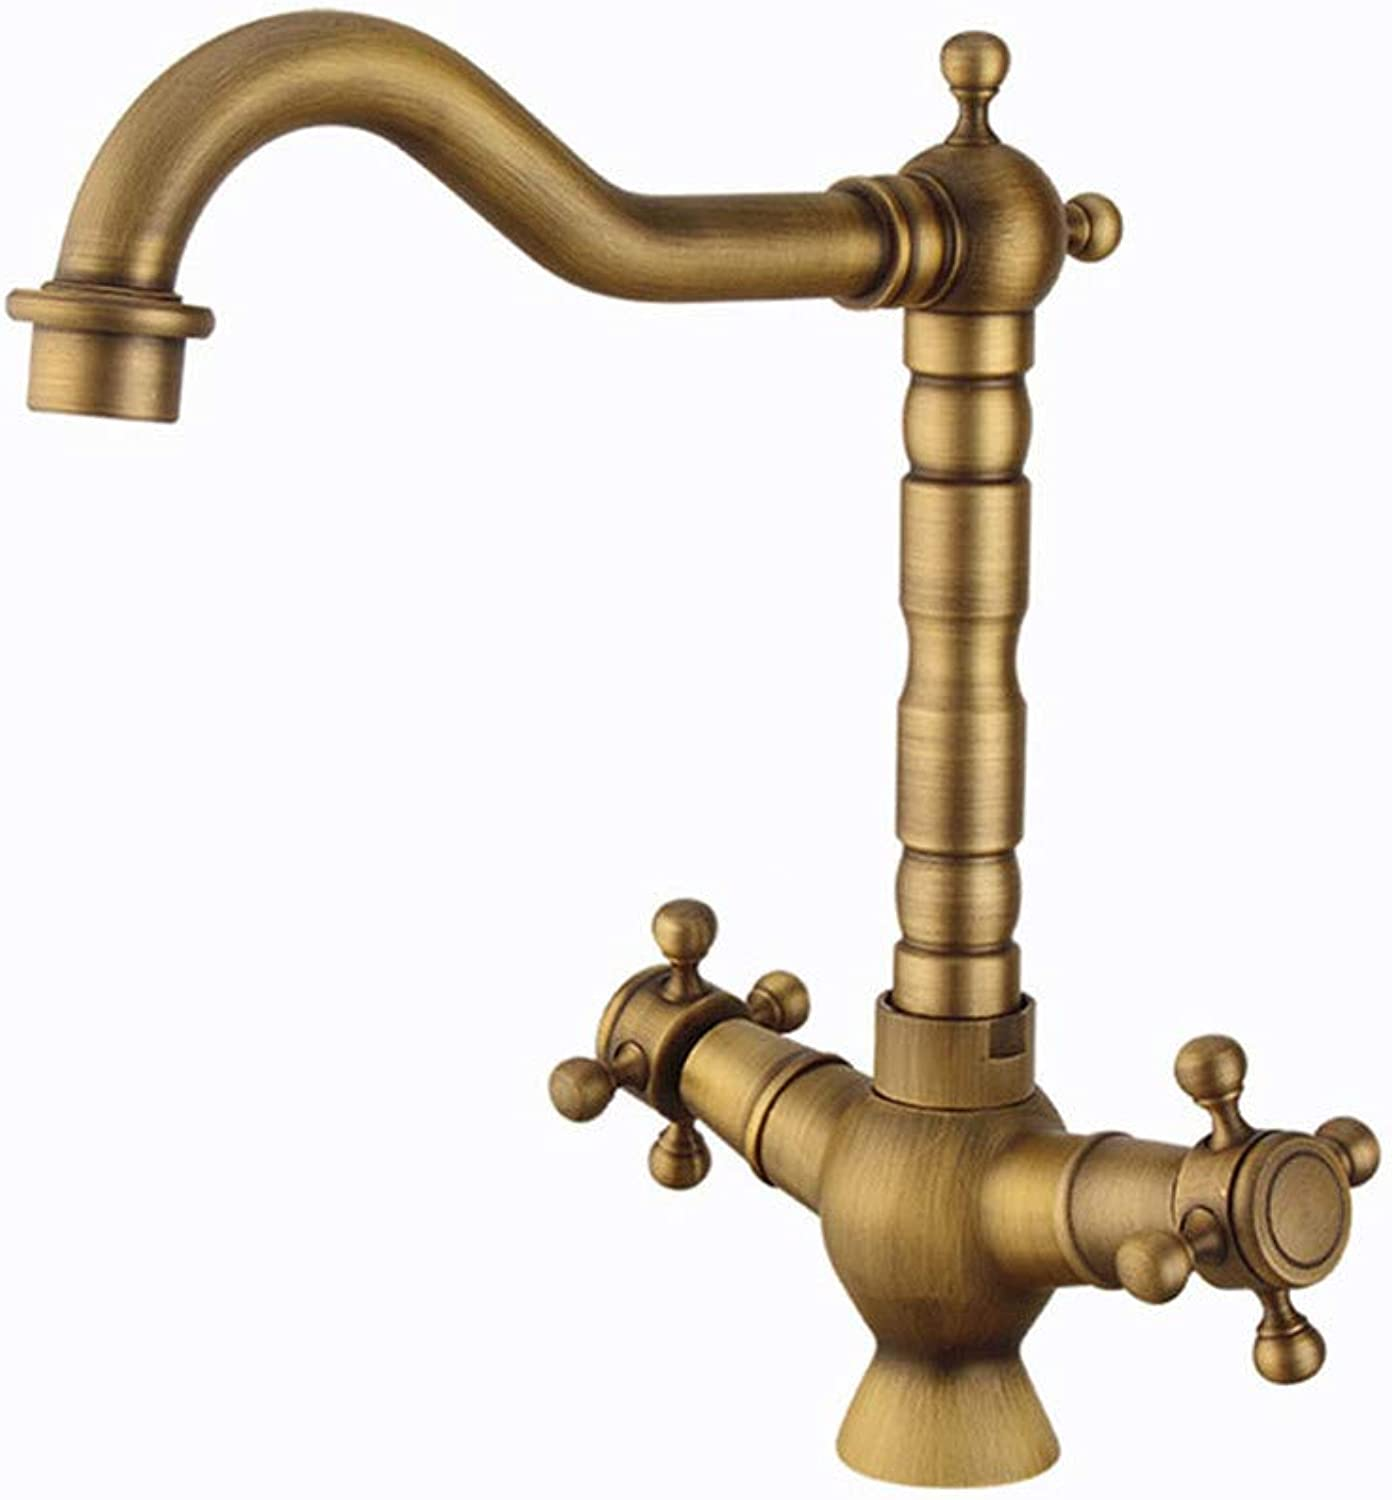 Brass European hot and Cold tap Retro Spiral Kitchen tap Household Vegetable Basin tap, Antique,18  25.5cm